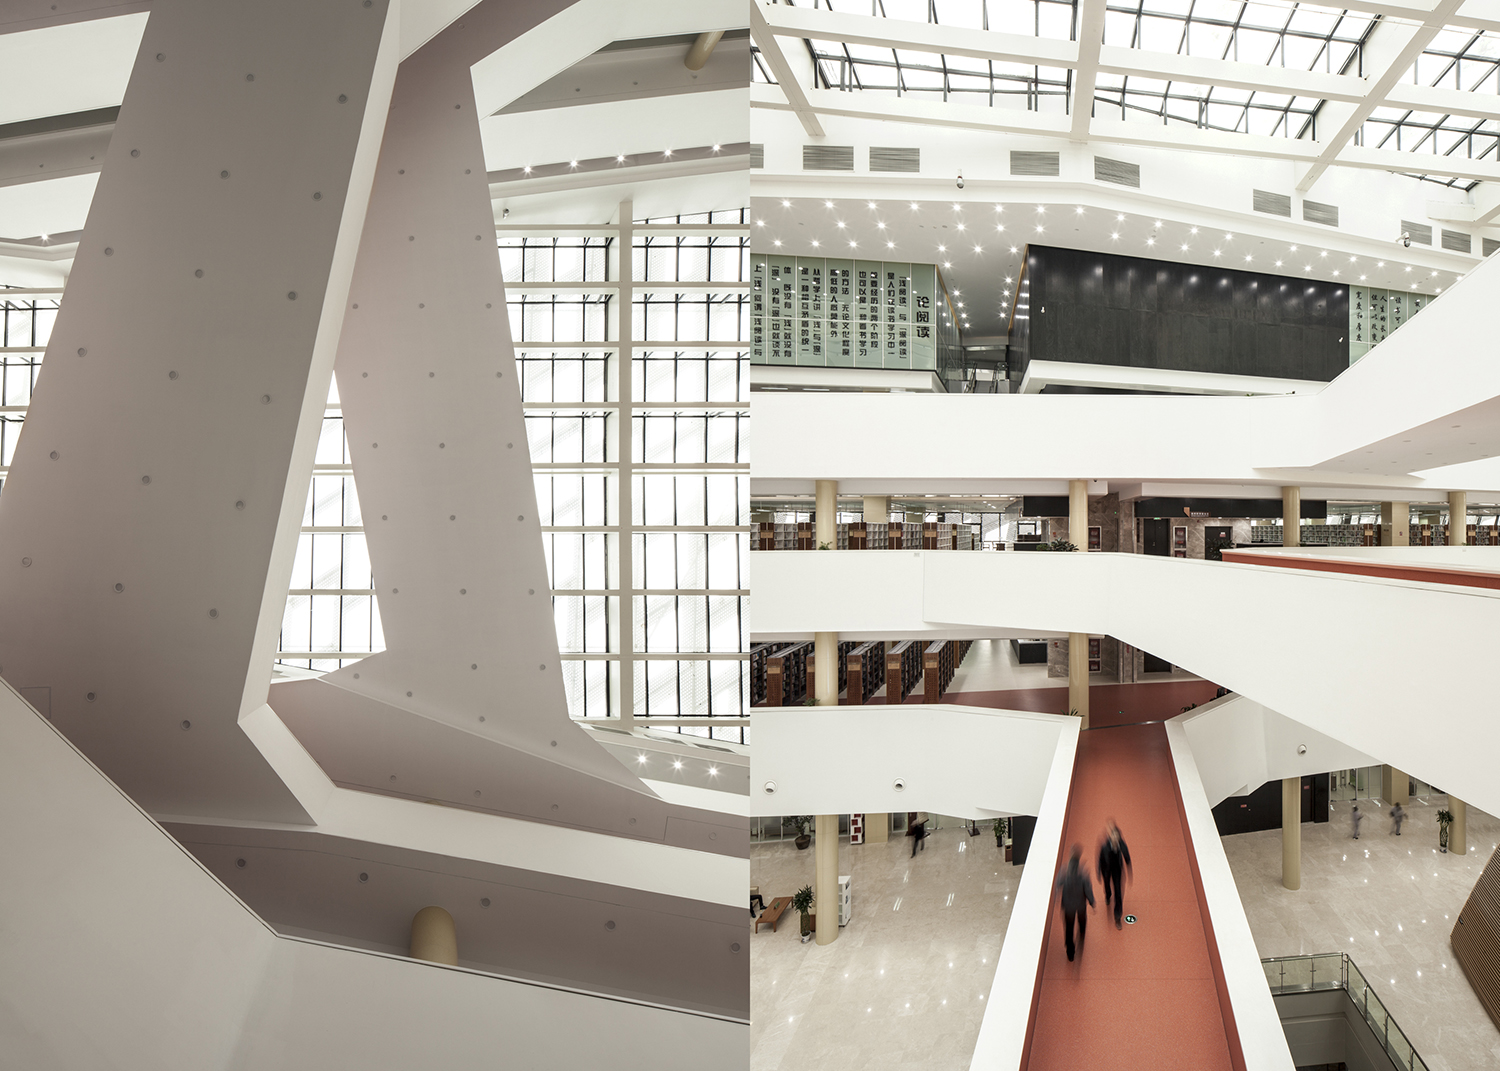 architecture studio . jnn3 cultural center, library . jinan, china